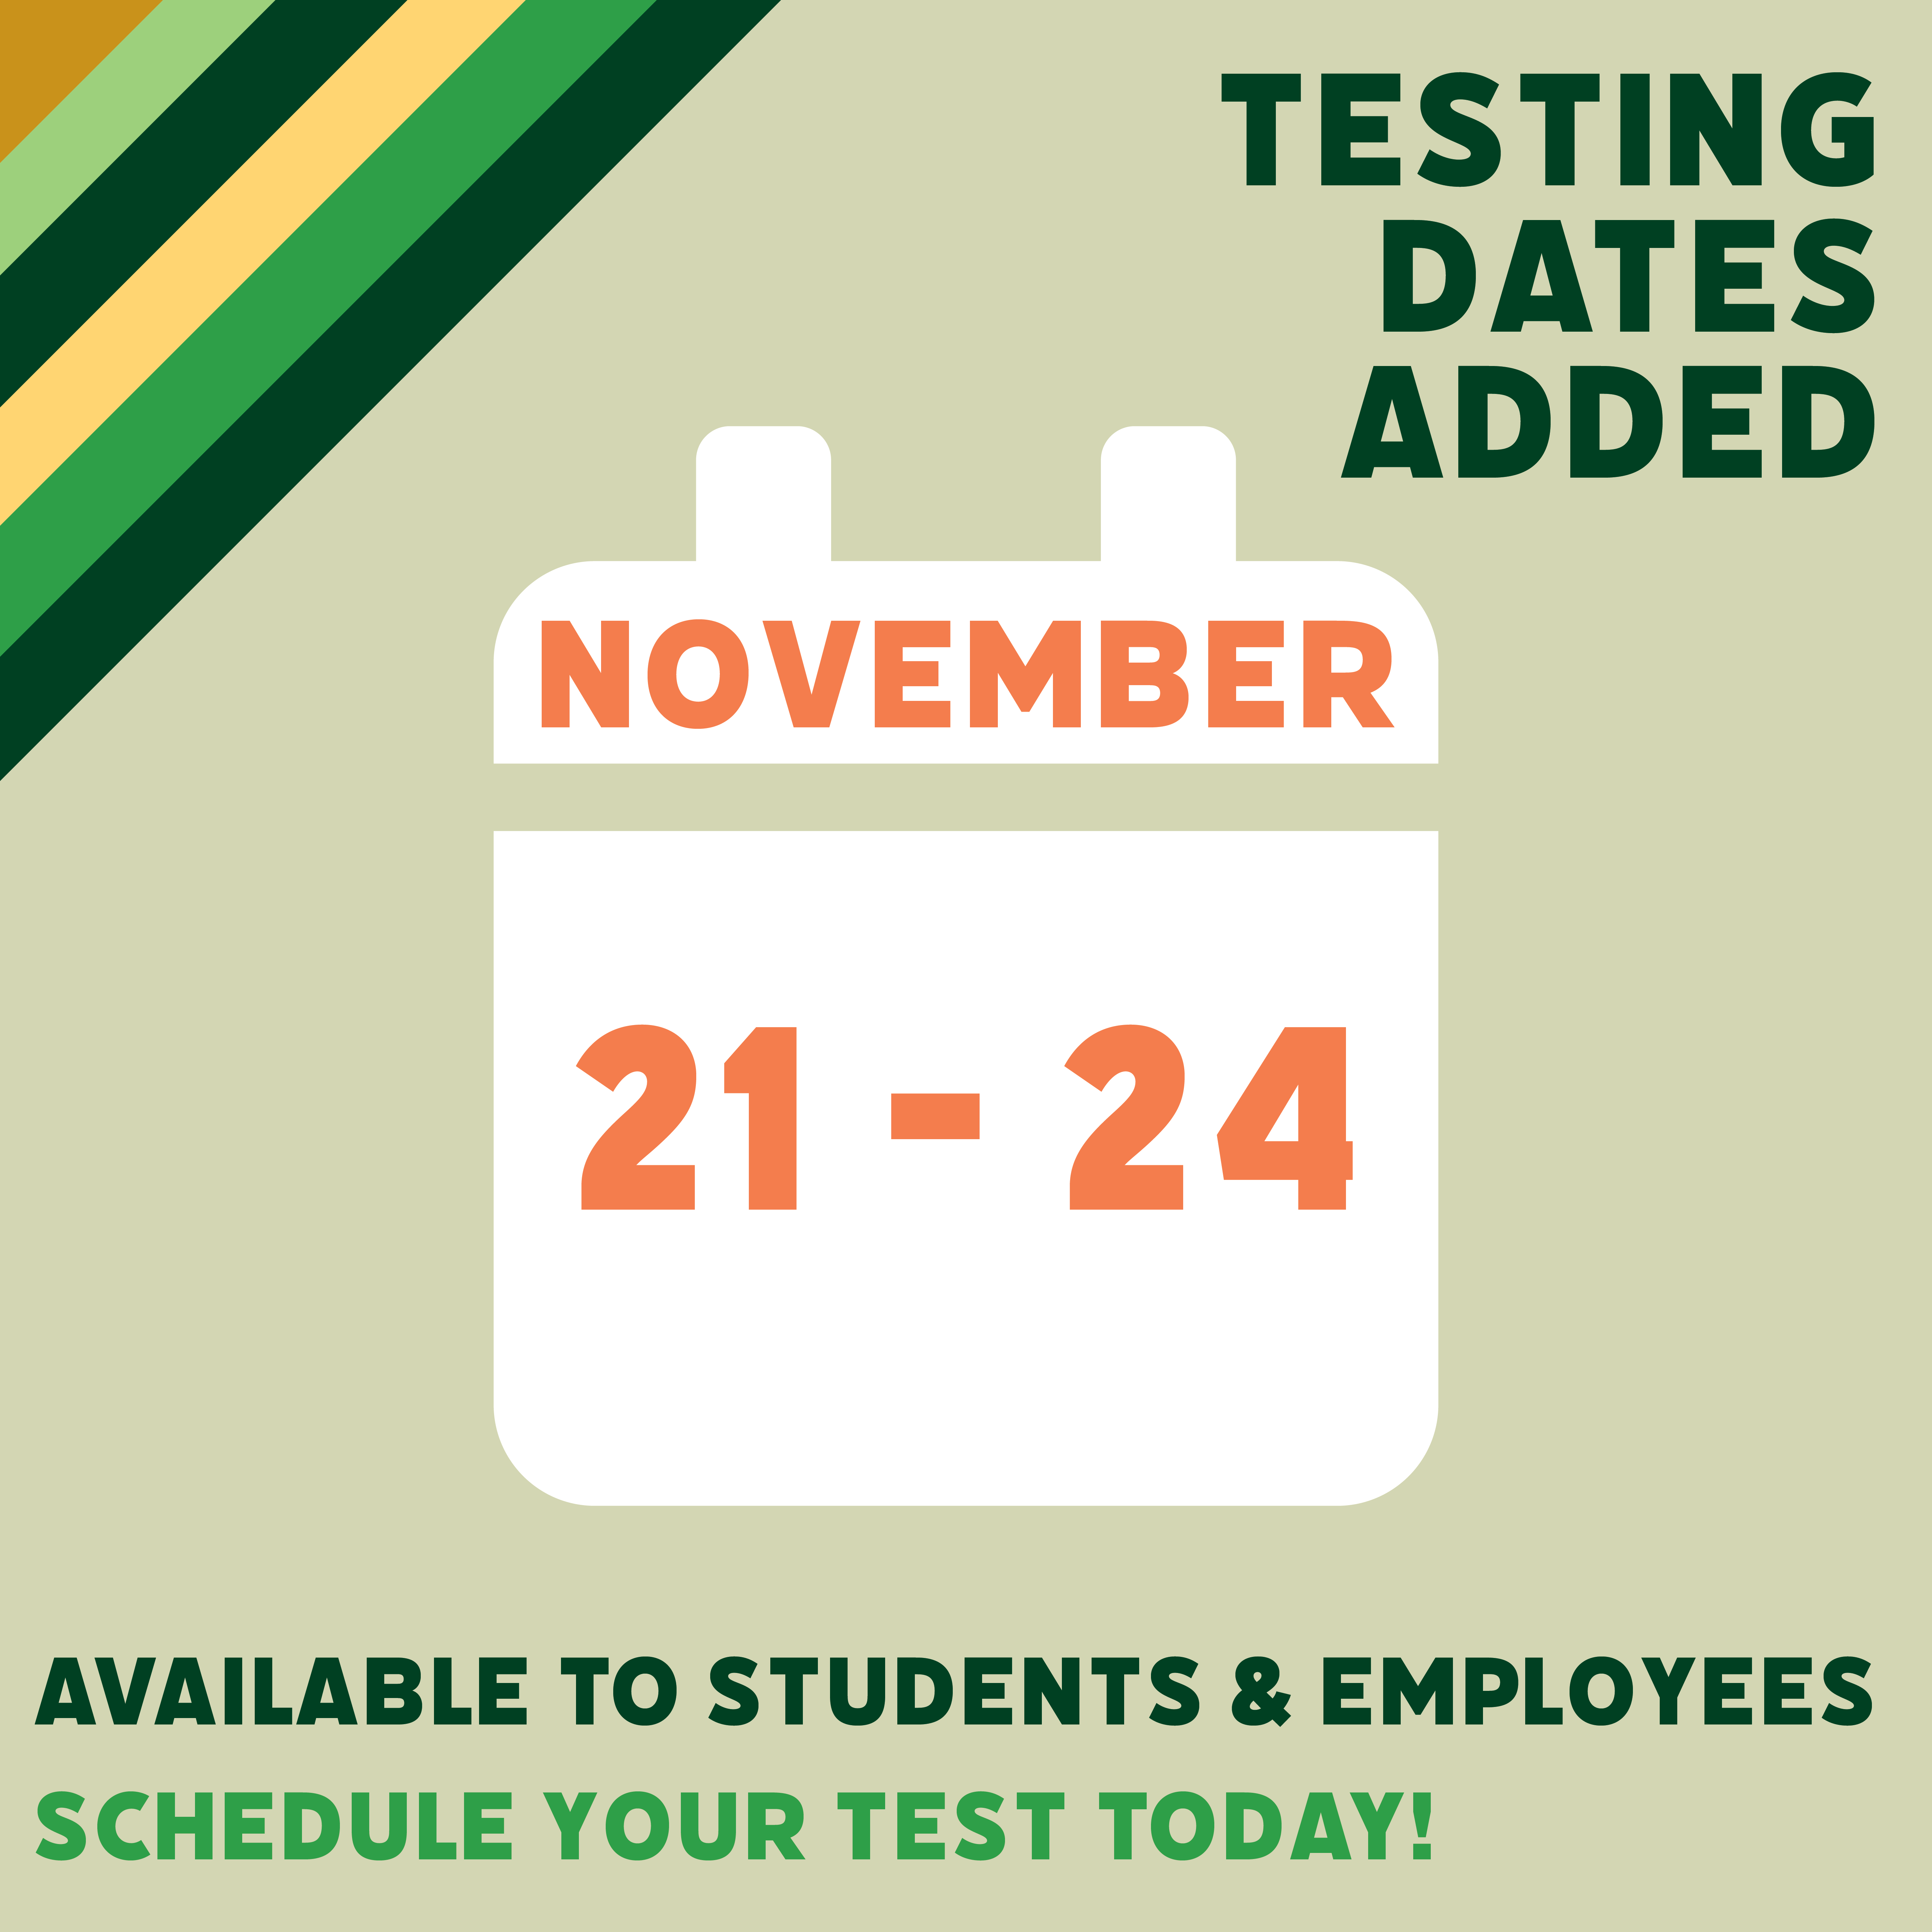 Testing Dates Added November 21-24, Available to Students & Employees Schedule Your Test Today!